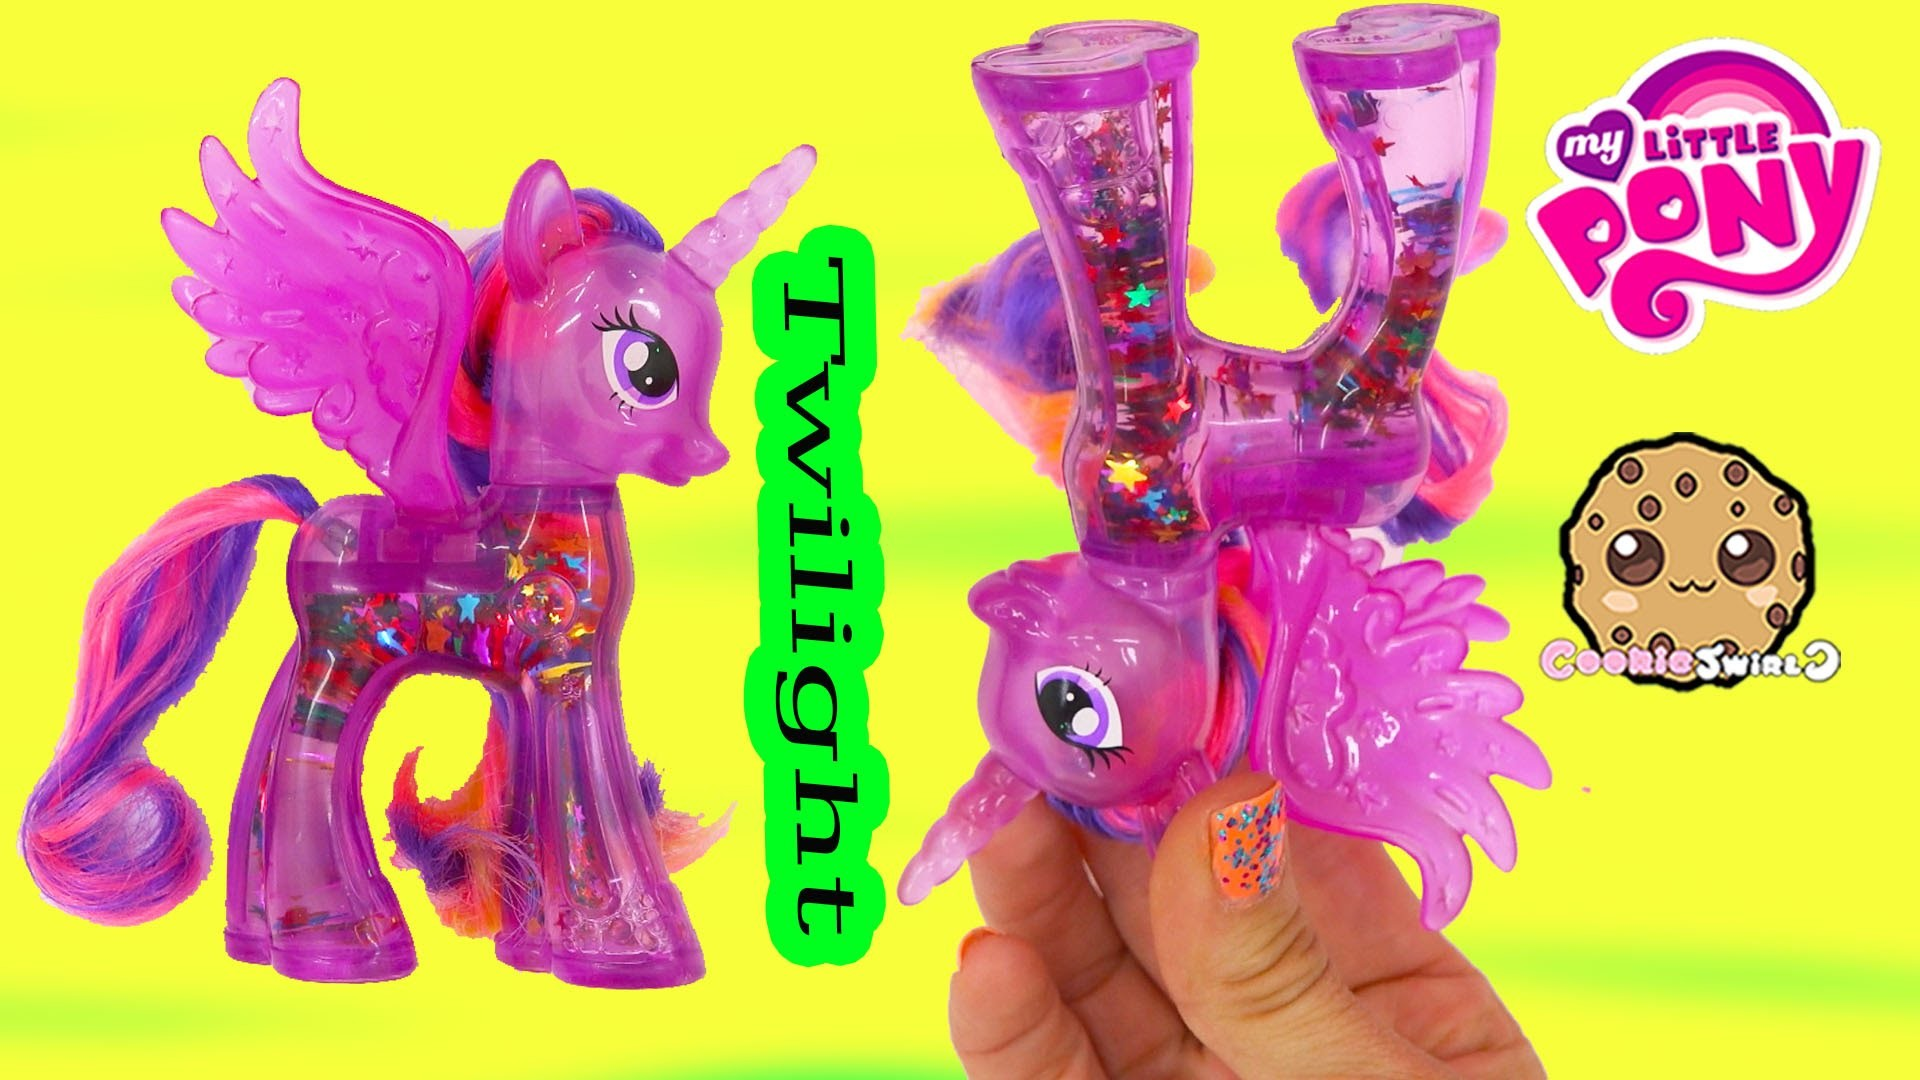 1920x1080 MLP Water Cuties Glitter Princess Twilight Sparkle Rainbow Shimmer My  Little Pony Toy Unboxing Video - YouTube